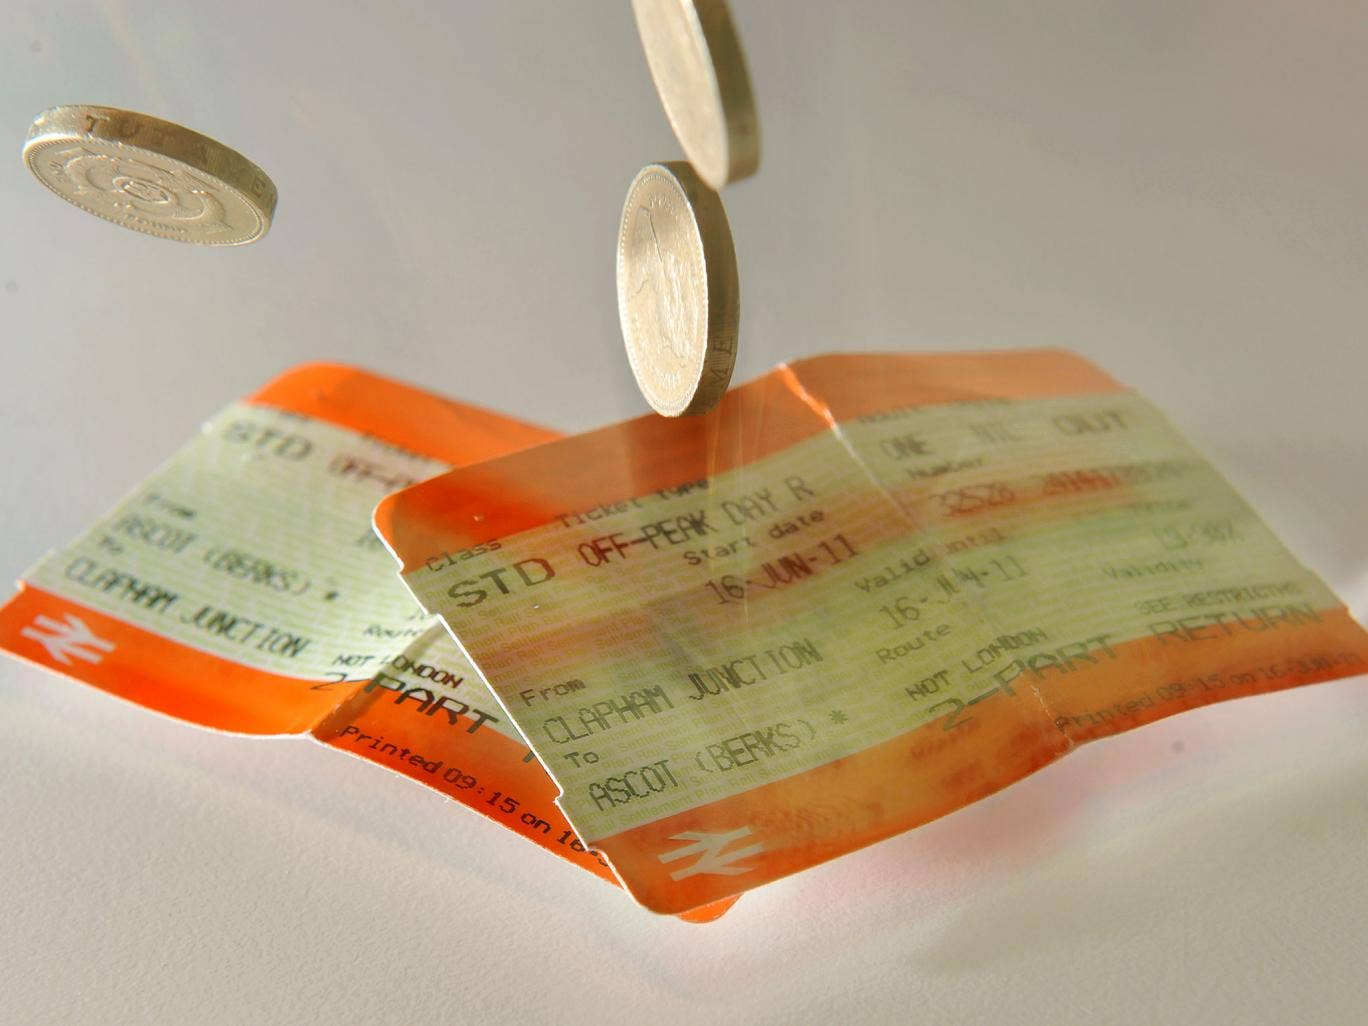 The rise is set to take the overall increase in fares to around 24.7 per cent since 2010